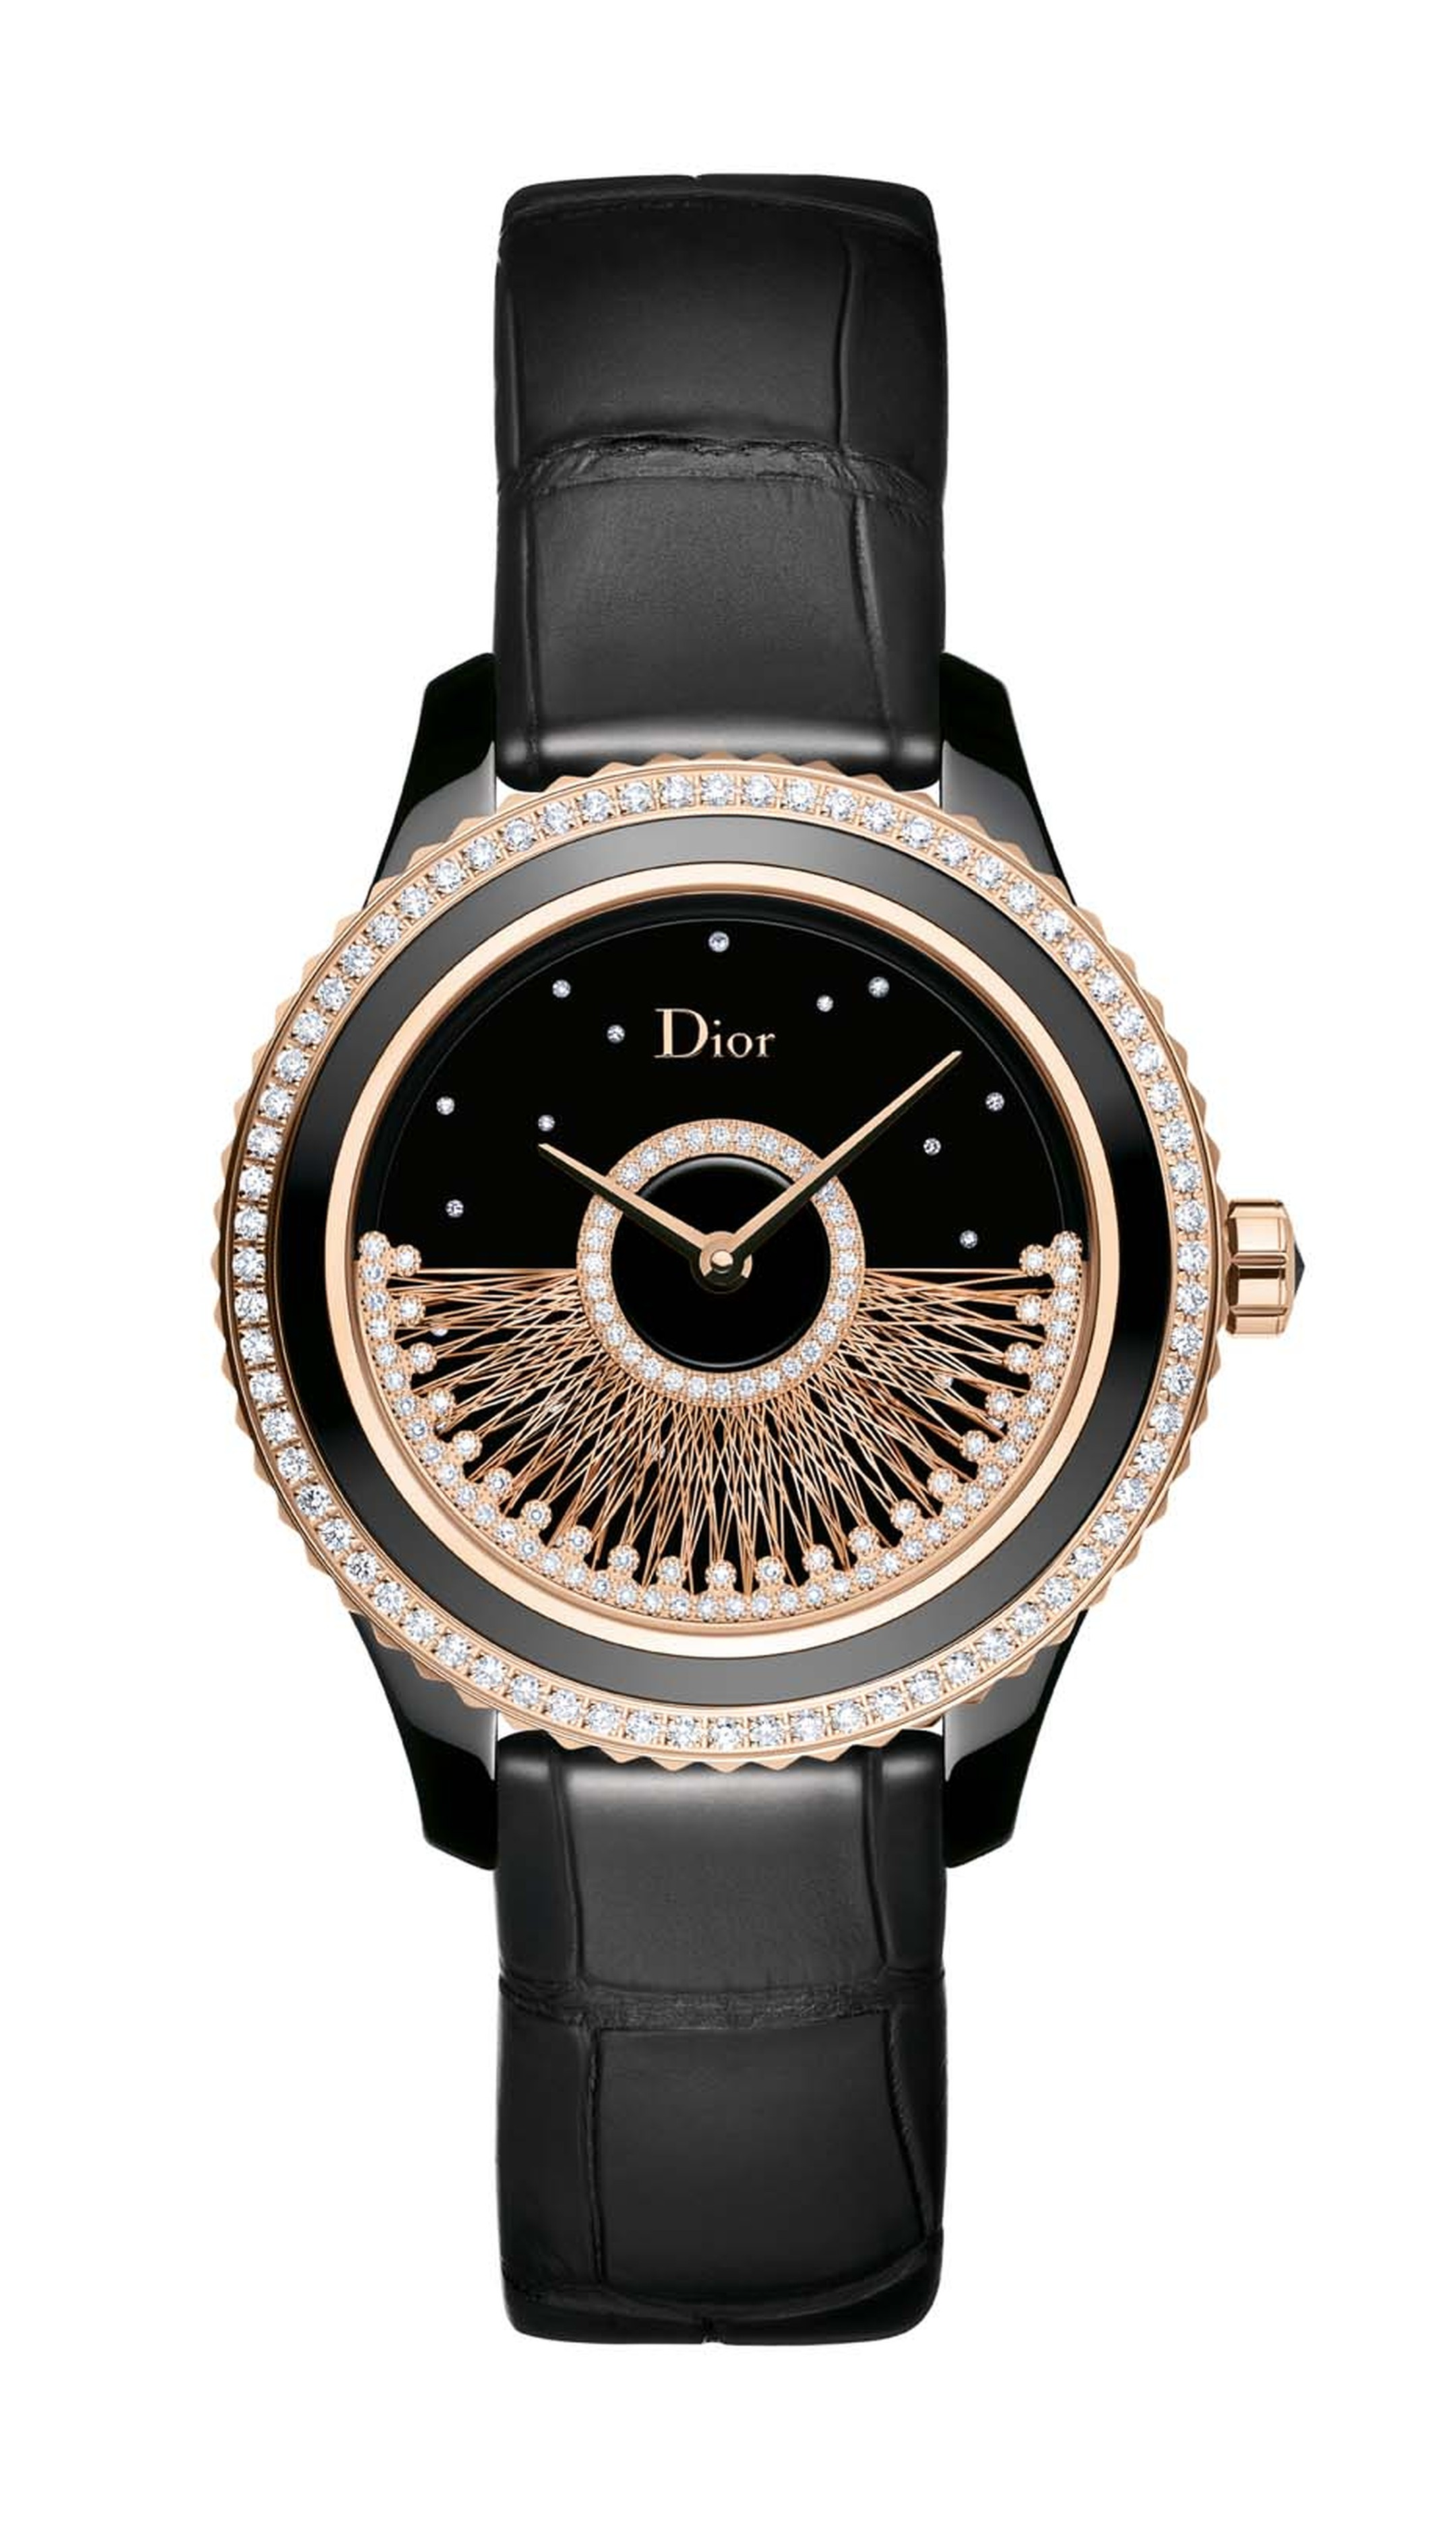 Dior VIII Grand Bal Fil d'Or watch in a 38mm pink gold and black ceramic case features a gold thread rotor hemmed with diamonds set against a black lacquered dial studded with diamonds. Limited edition of 88 pieces.